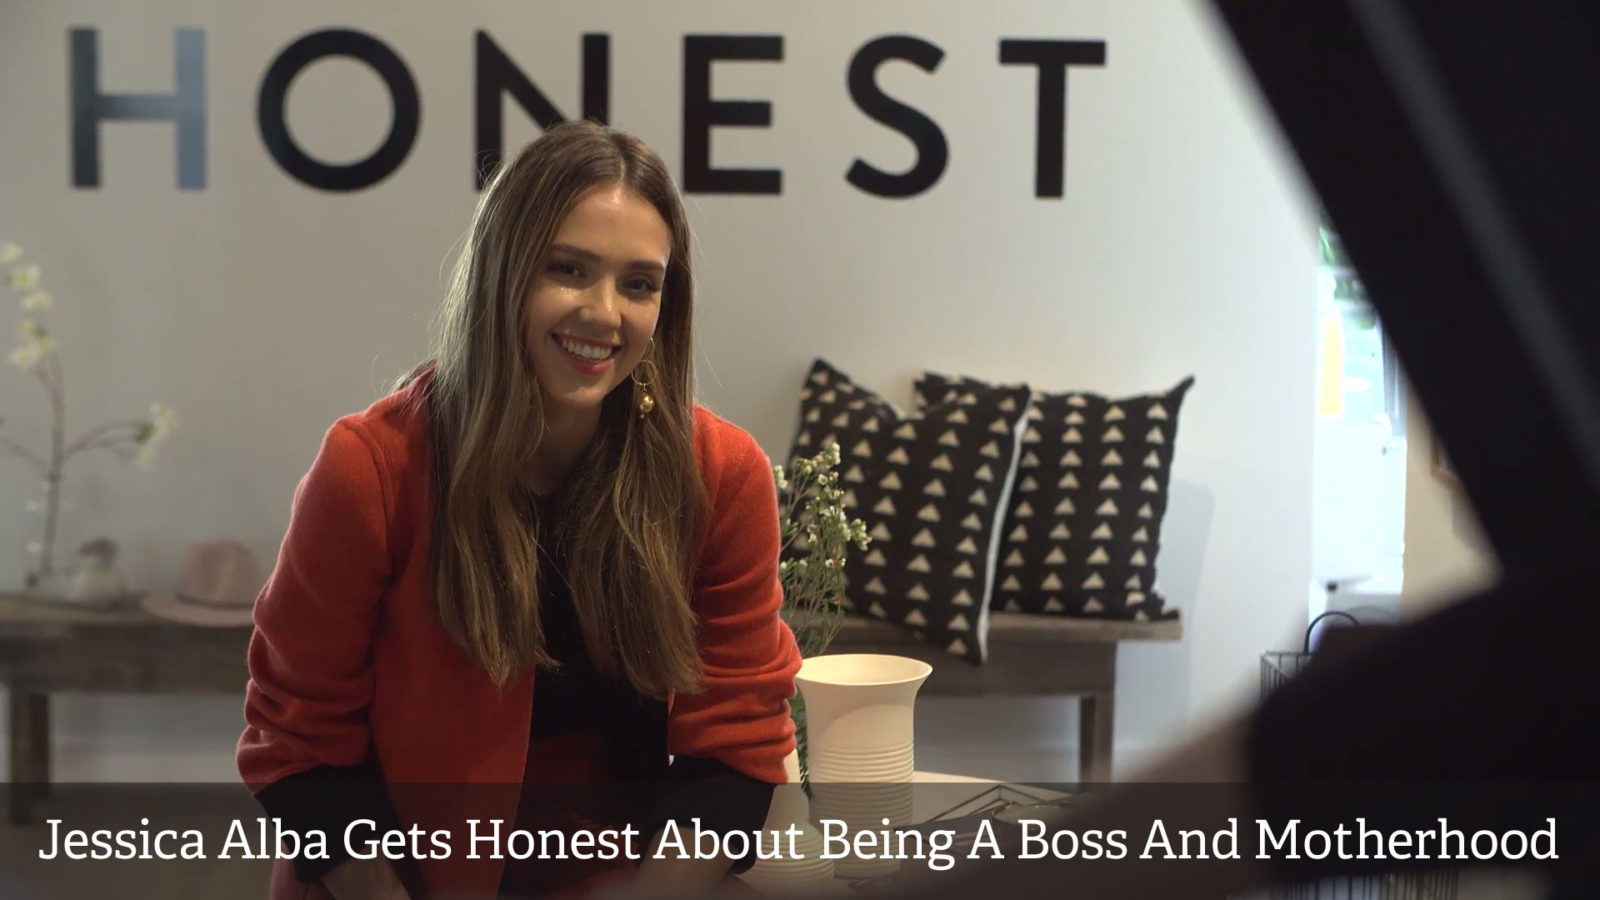 Jessica Alba Gets Honest About Being A Boss And Motherhood